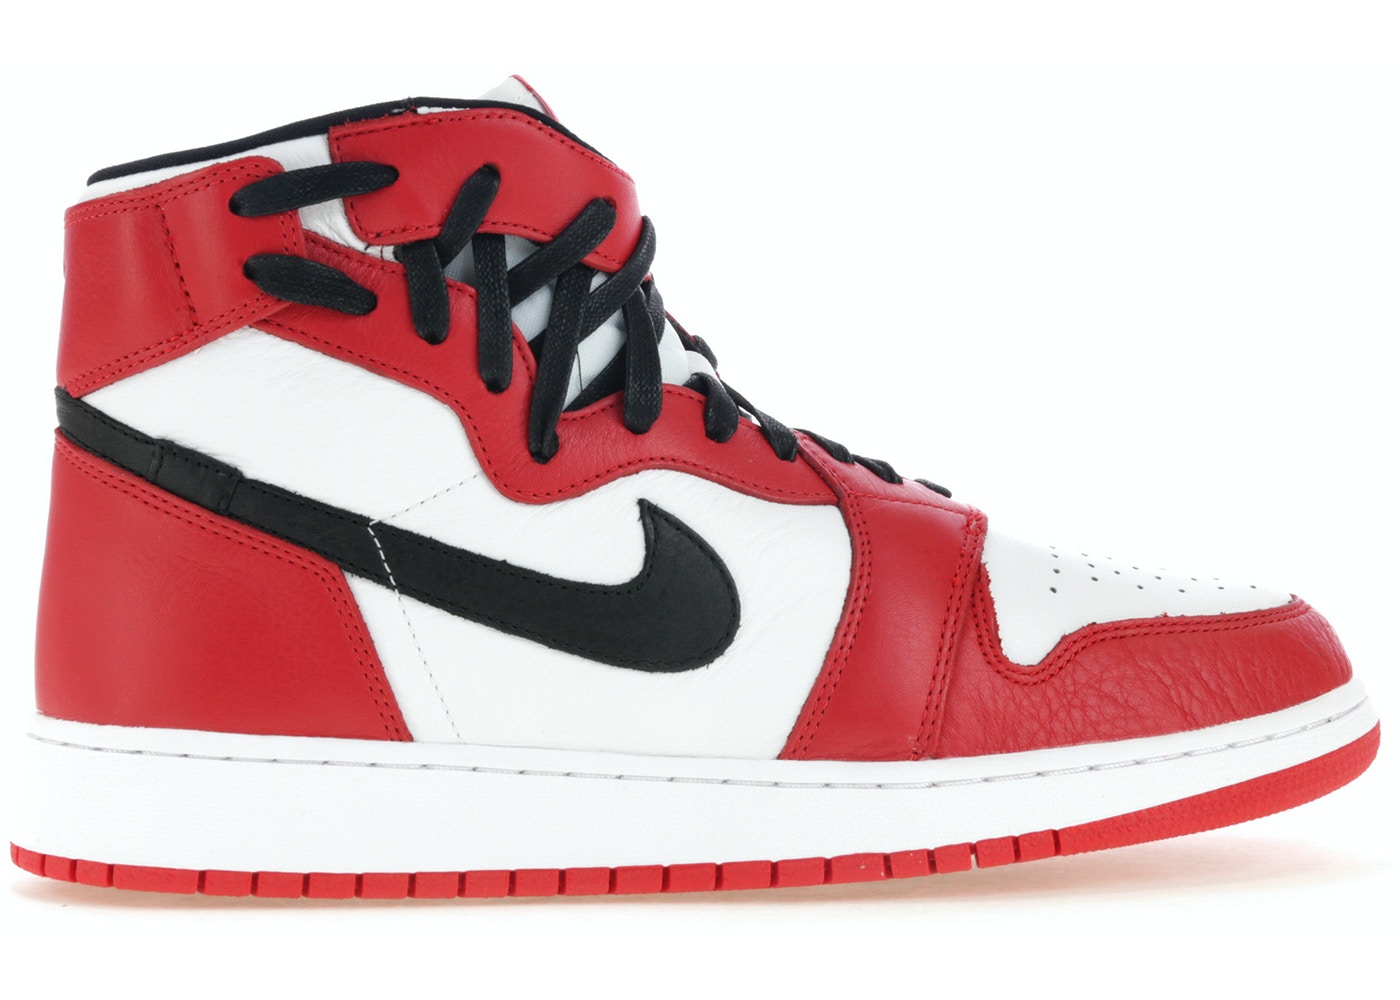 premium selection 6fd10 f29d3 Jordan 1 Rebel XX Chicago (W)